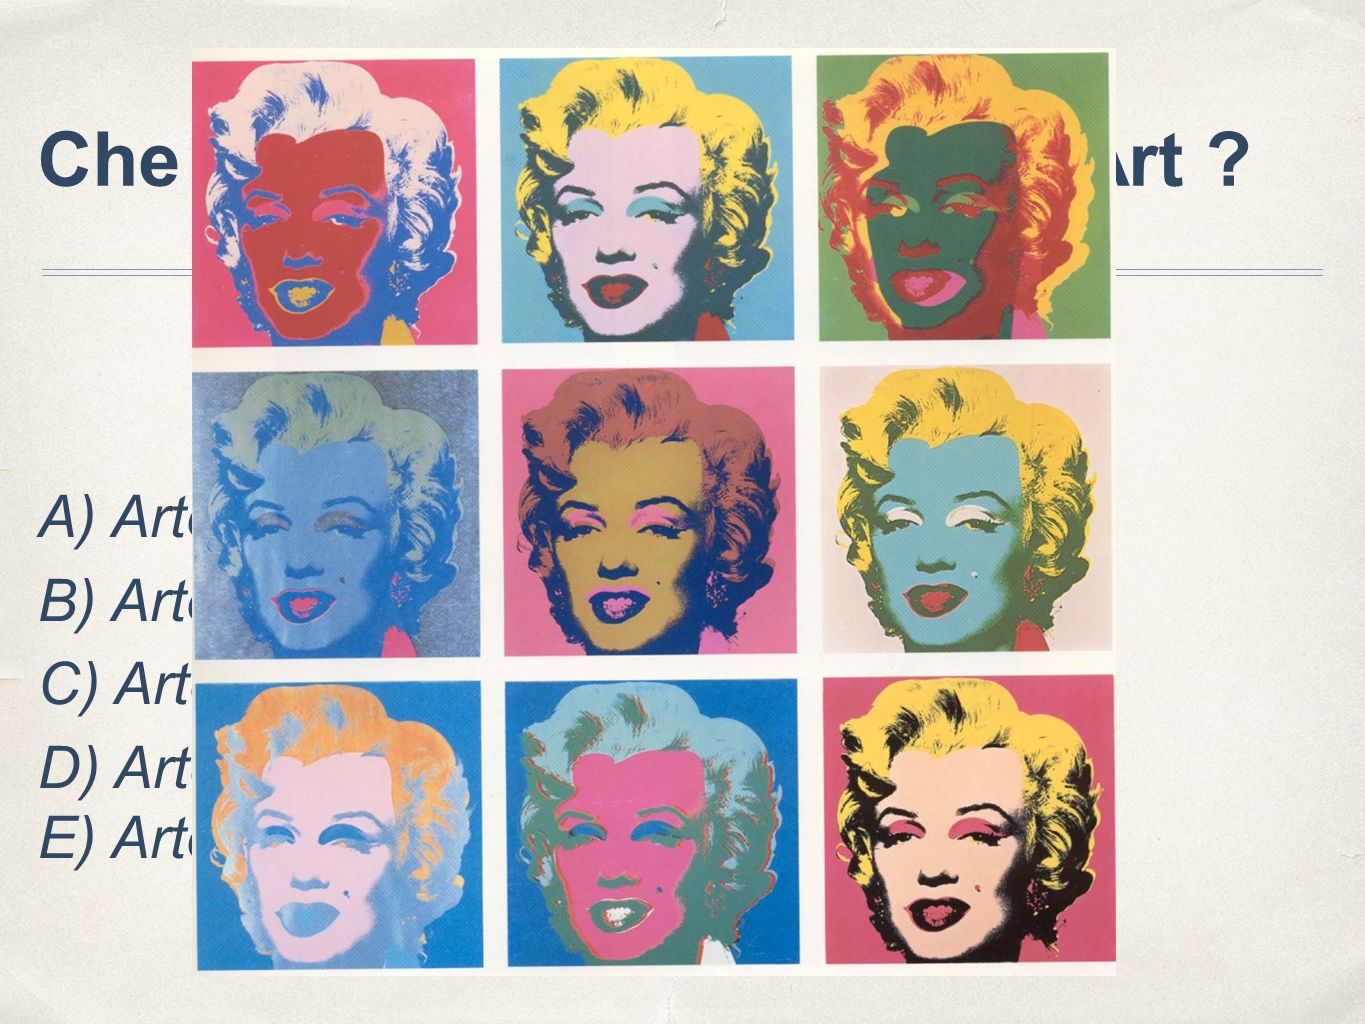 Che cosa si intende per Pop Art